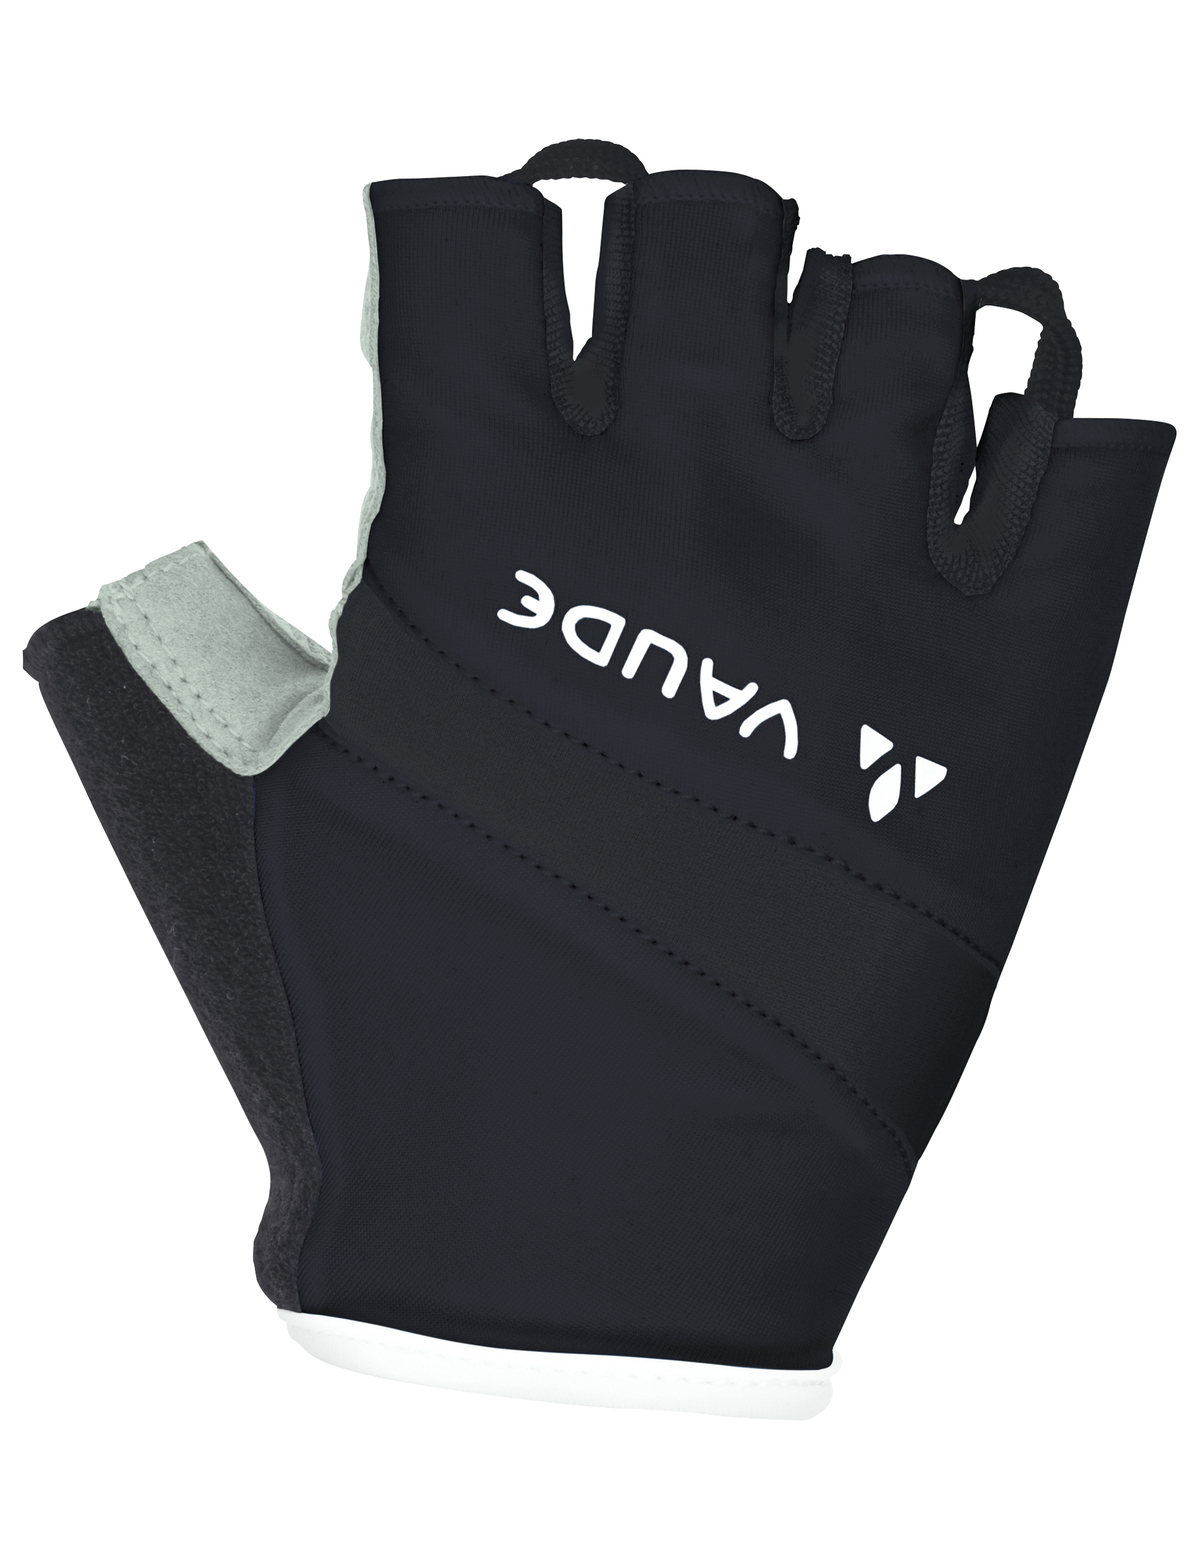 VAUDE Women´s Active Gloves black Größe 8 - schneider-sports